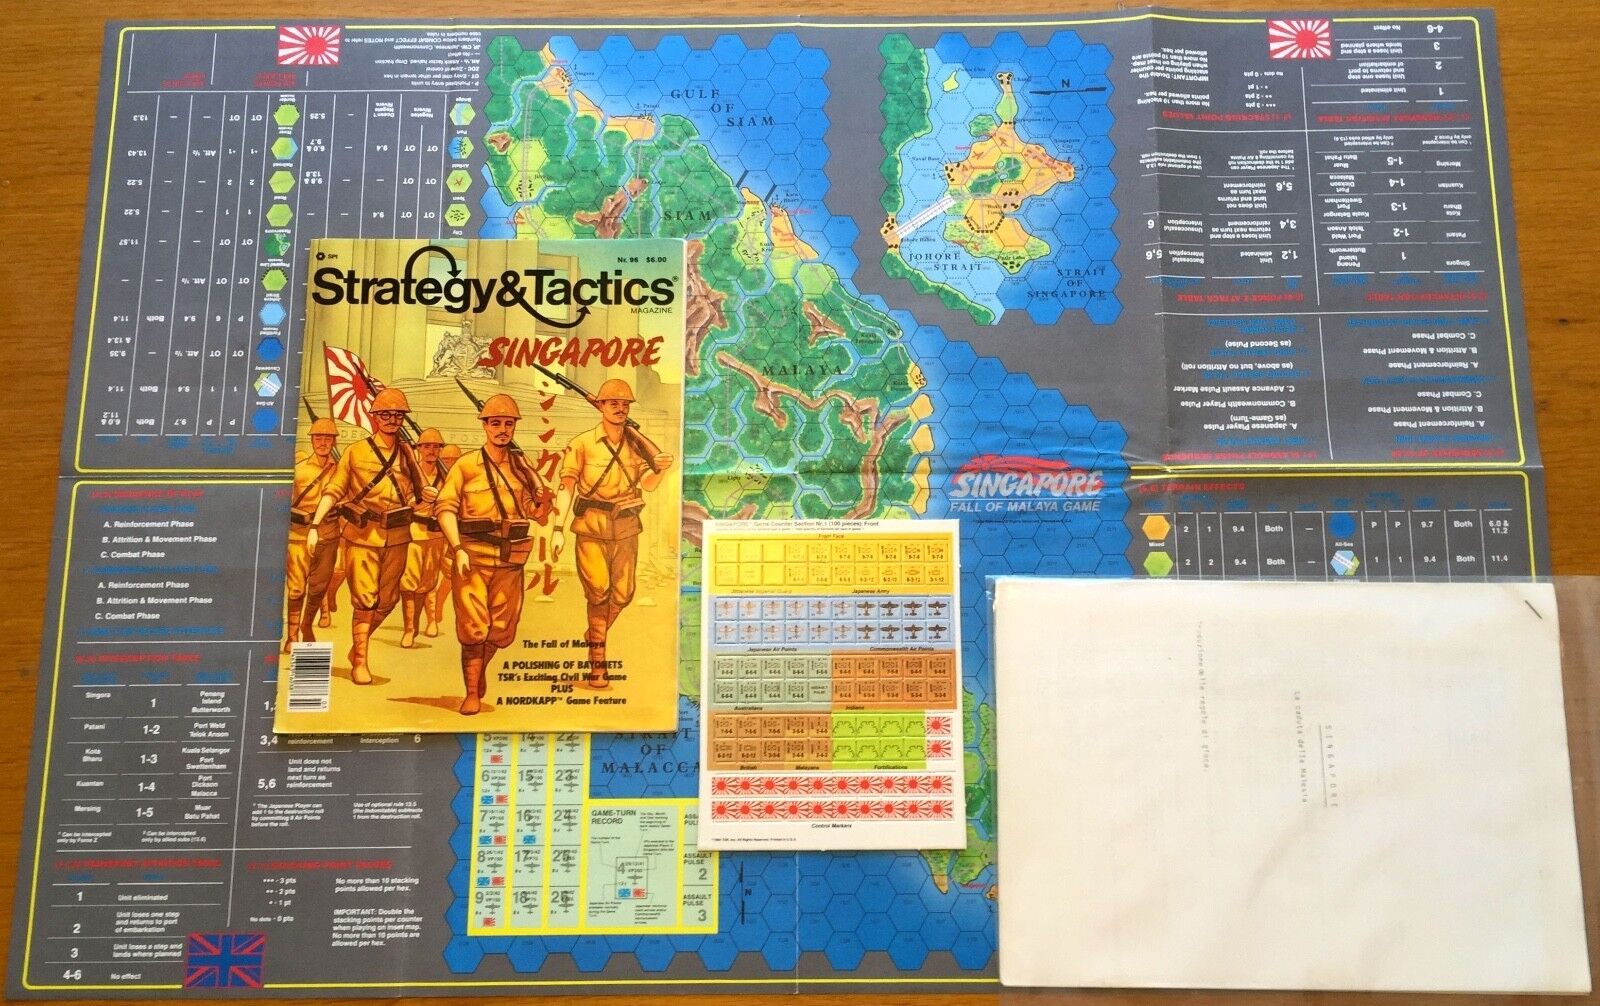 Strategy & Tactics 96 - Singapore - SPI TSR 1984 - UNPUNCHED